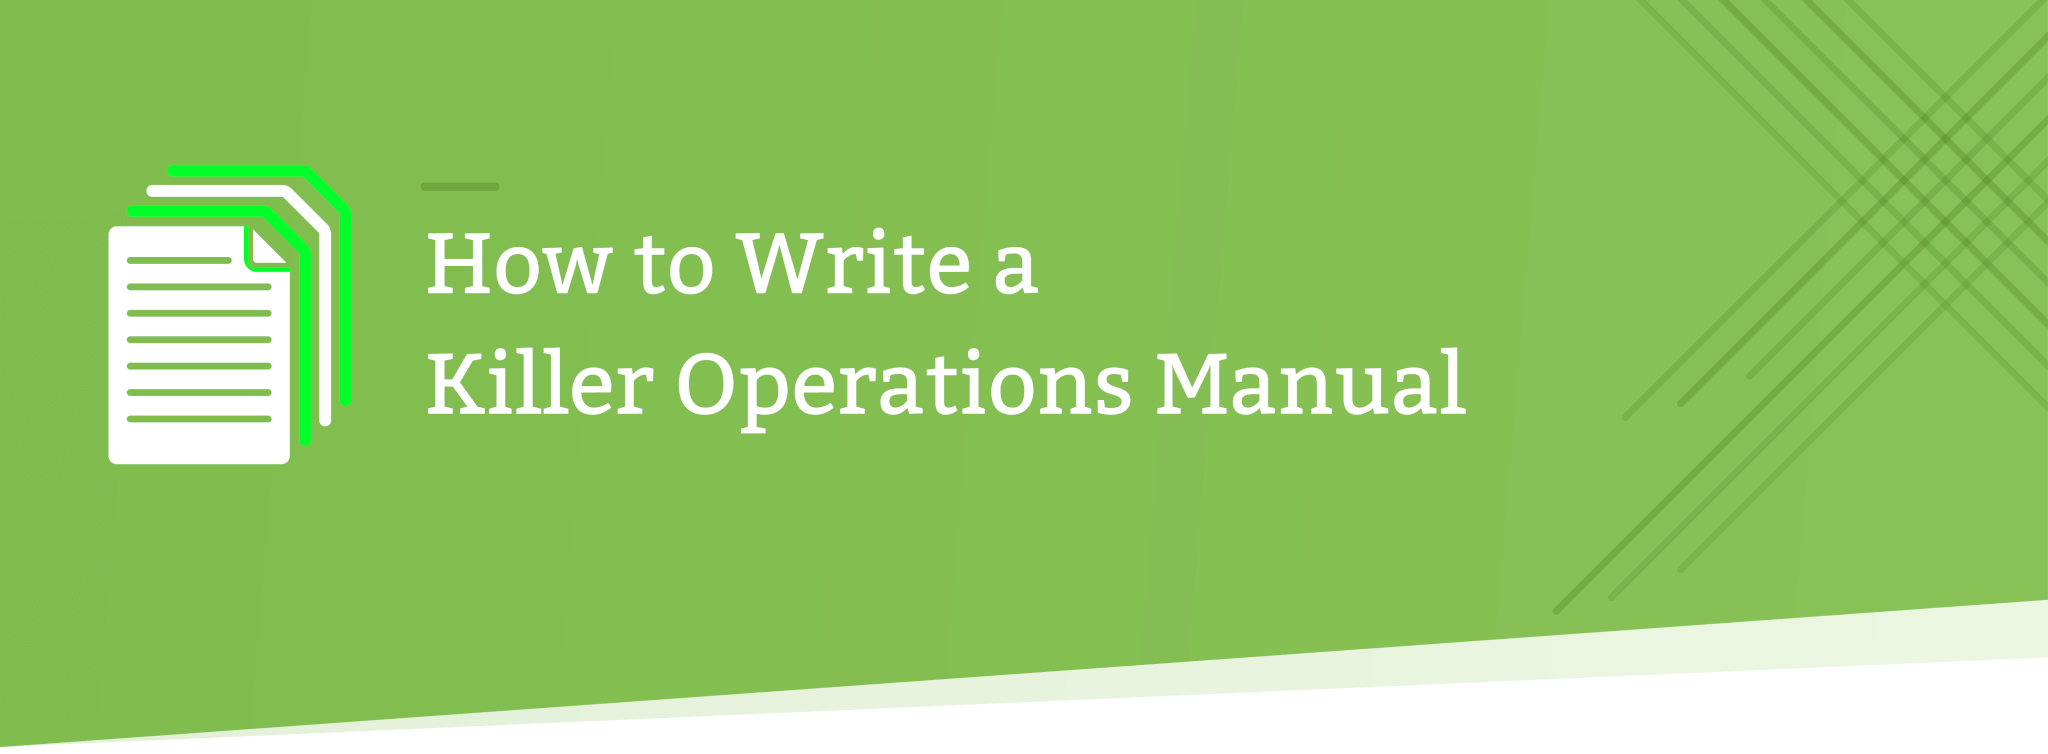 How To Write A Killer Operations Manual 5 Easy Parts Manual Guide